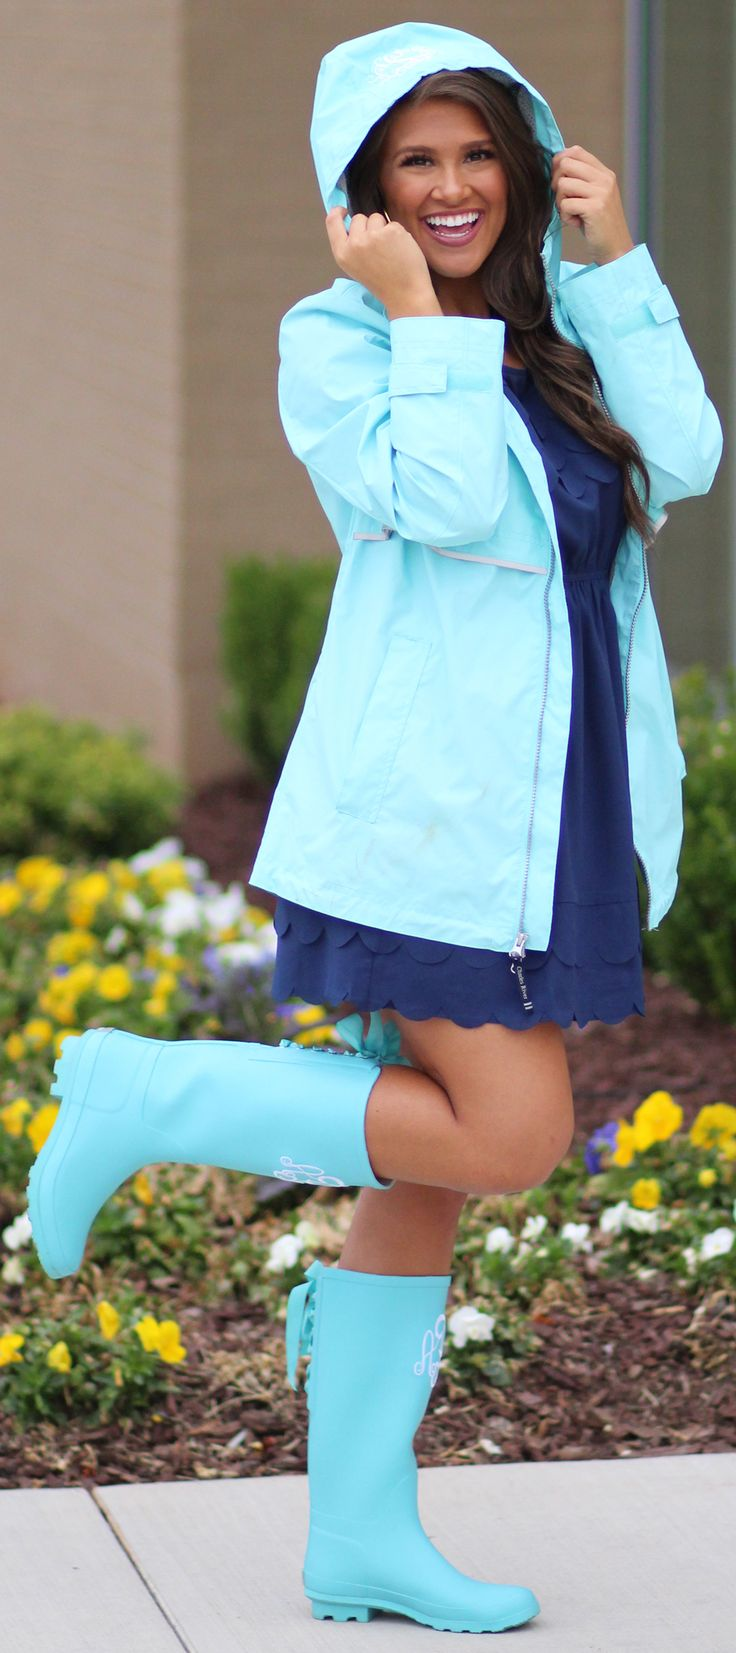 Here's something that'll make you wanna dance in the rain: New England Rain Jackets are ON SALE!!